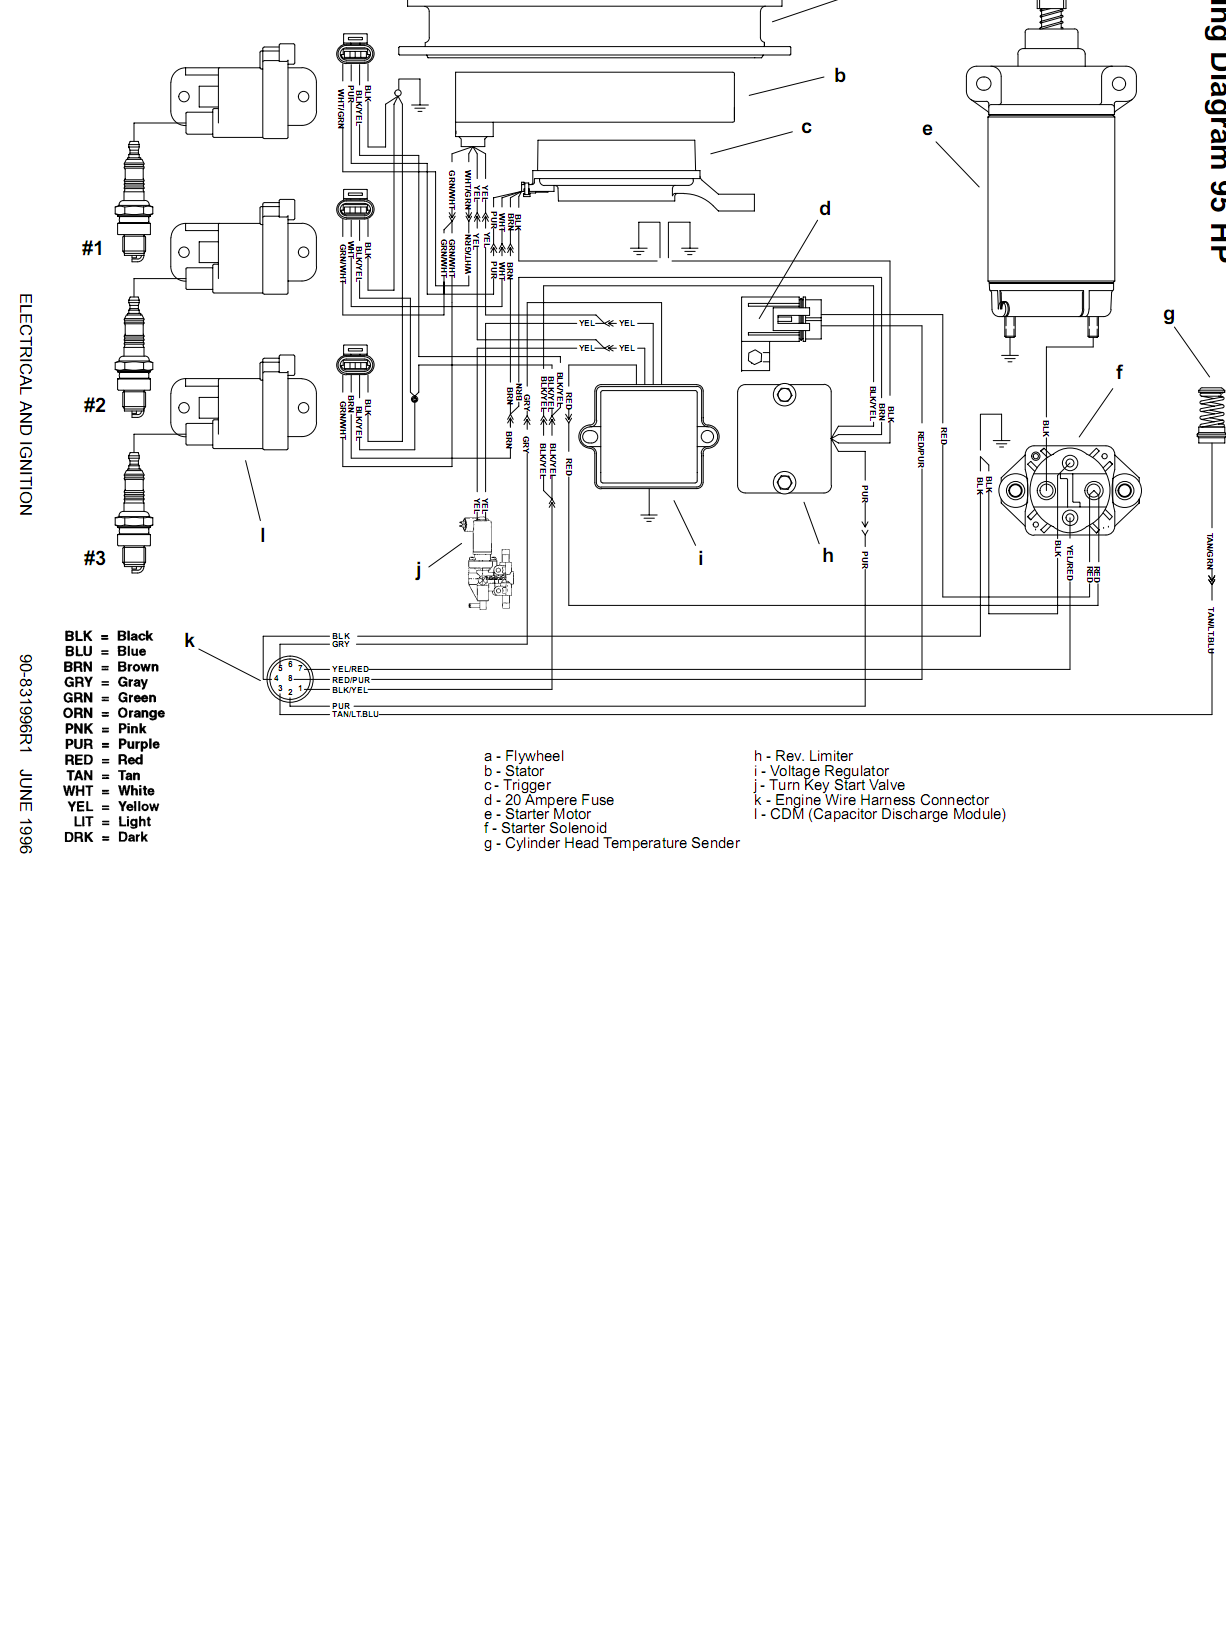 2012 05 01_141639_95hp_wiring_diagram mercury stator wiring diagram 115 hp mercury outboard wiring 2009 Yamaha Raider Wiring-Diagram at reclaimingppi.co